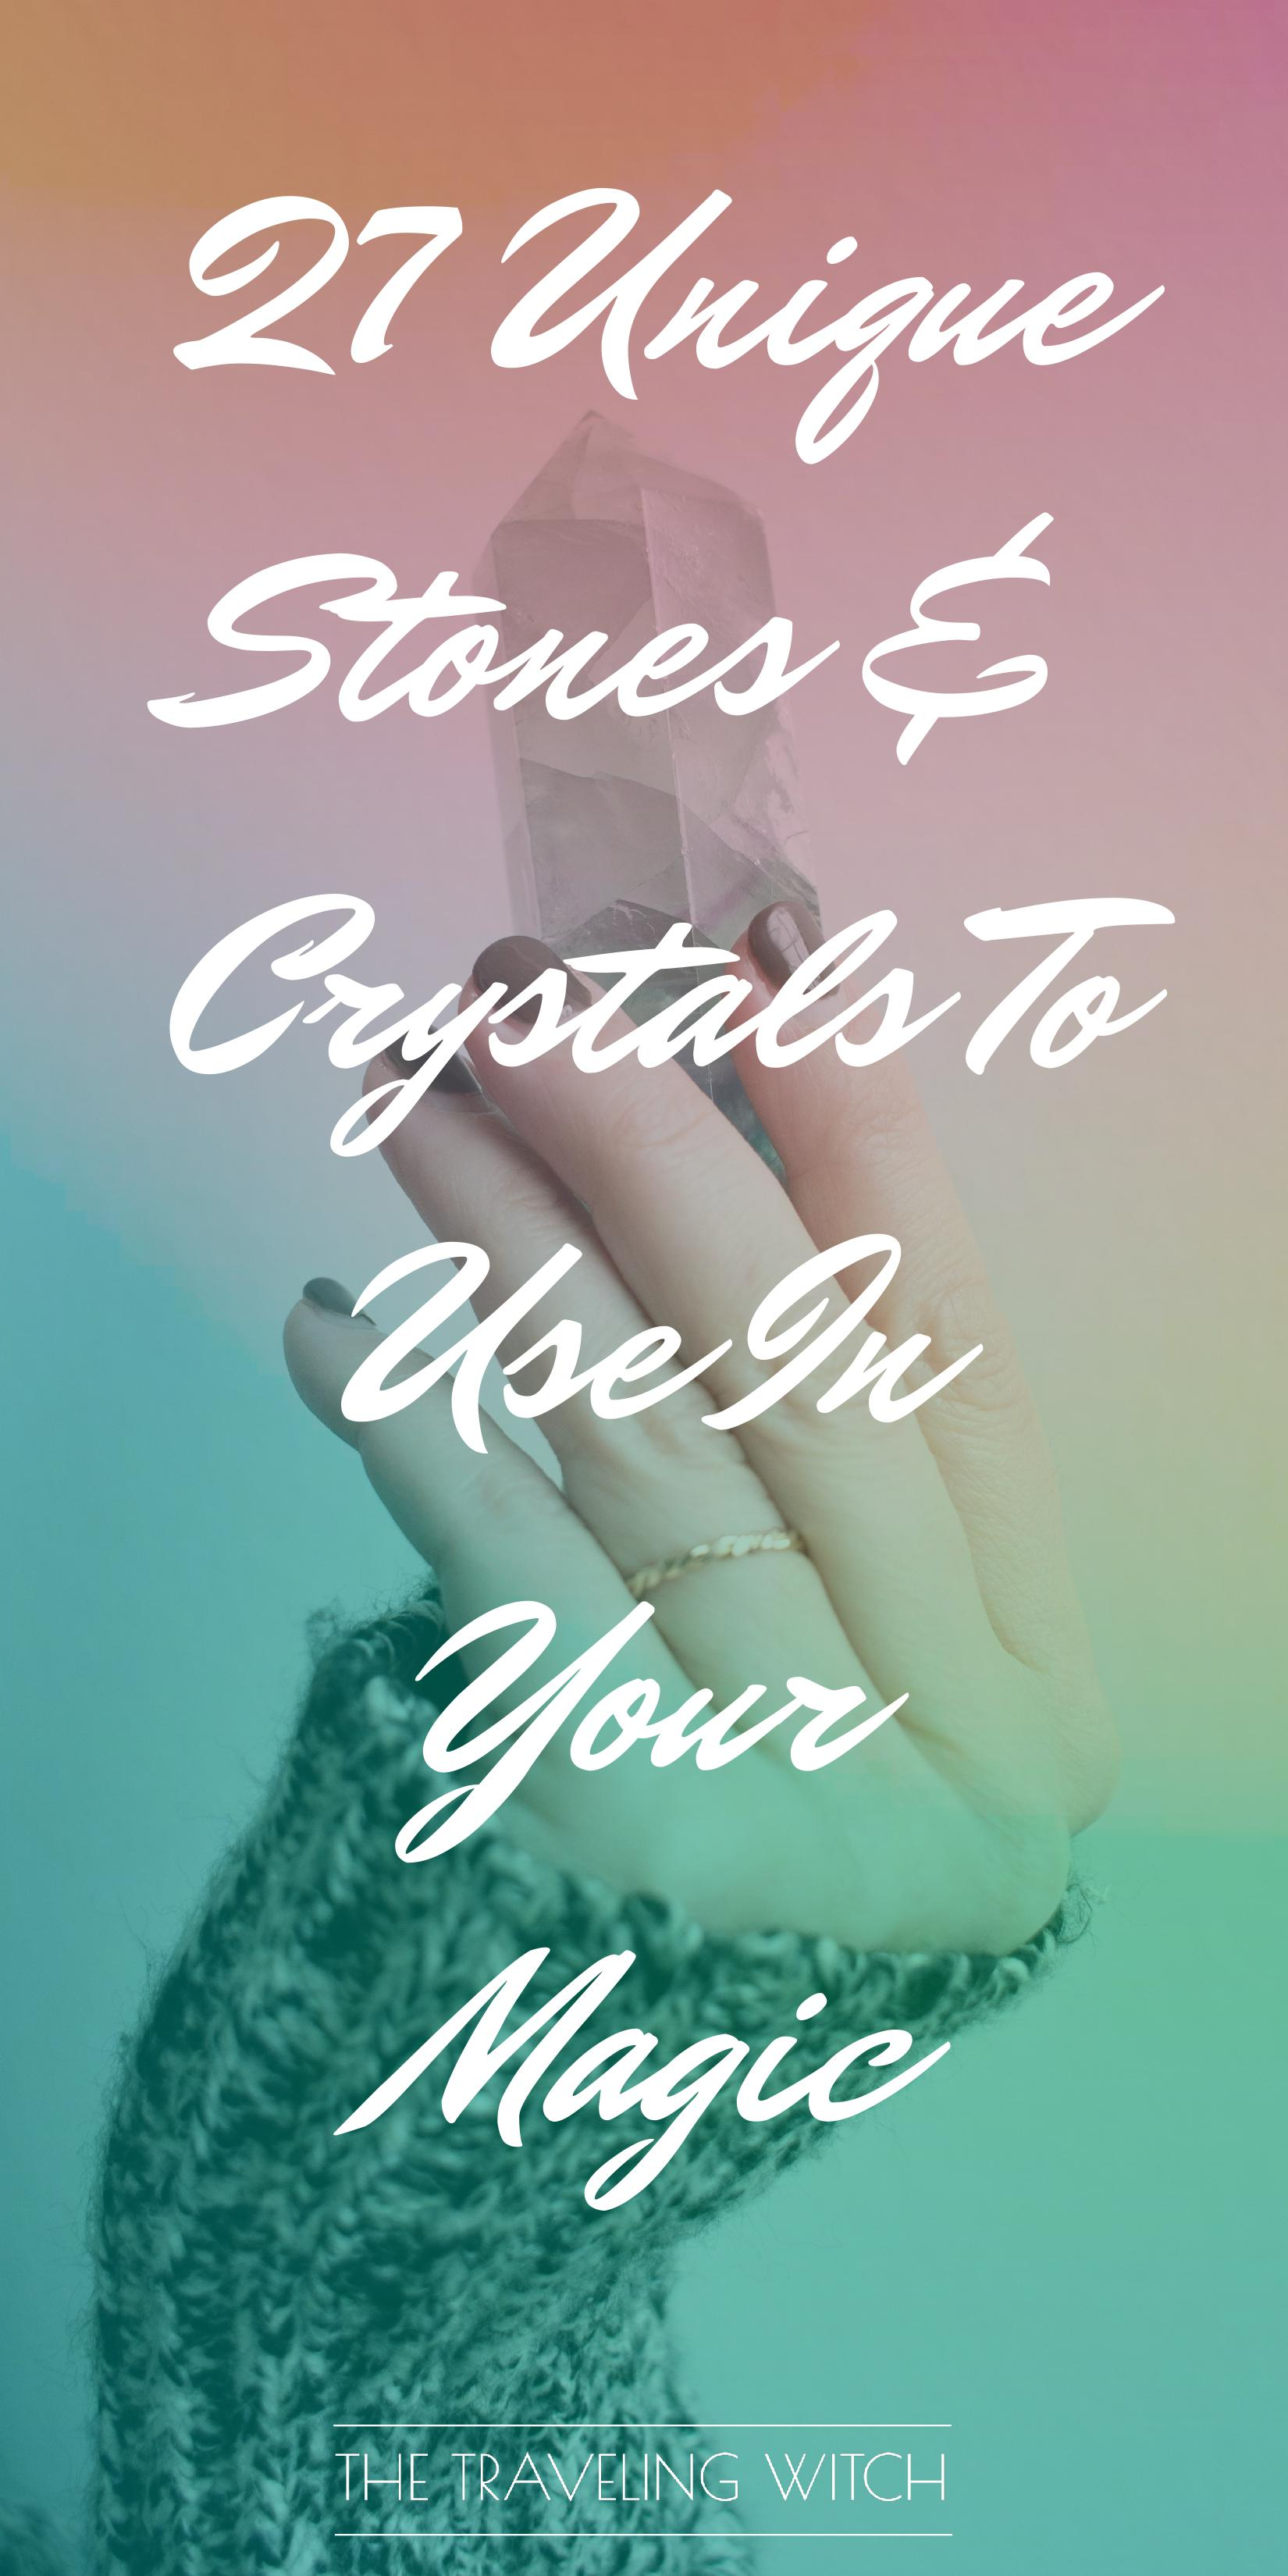 27 Unique Stones & Crystals To Use In Your Magic by The Traveling Witch #Witchcraft #Magic